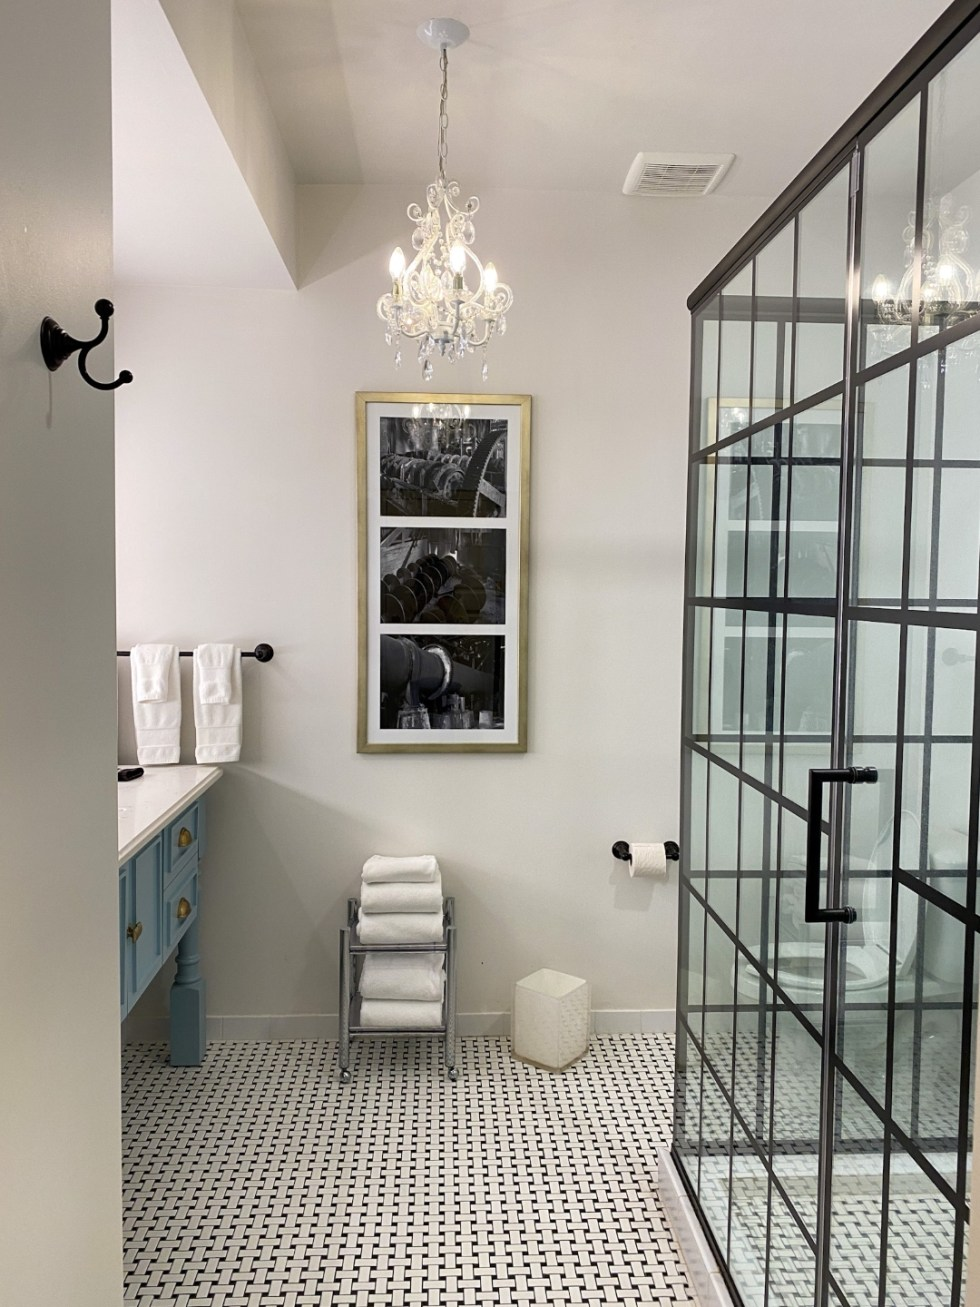 Weekend Travel: The Best Things to Do in Beaufort NC in 48 Hours - I'm Fixin' To - @imfixintoblog |Things to Do in Beaufort NC by popular NC travel blog, I'm Fixin' To: image of a bathroom with black and white tile and blue vanity and walk-in shower.